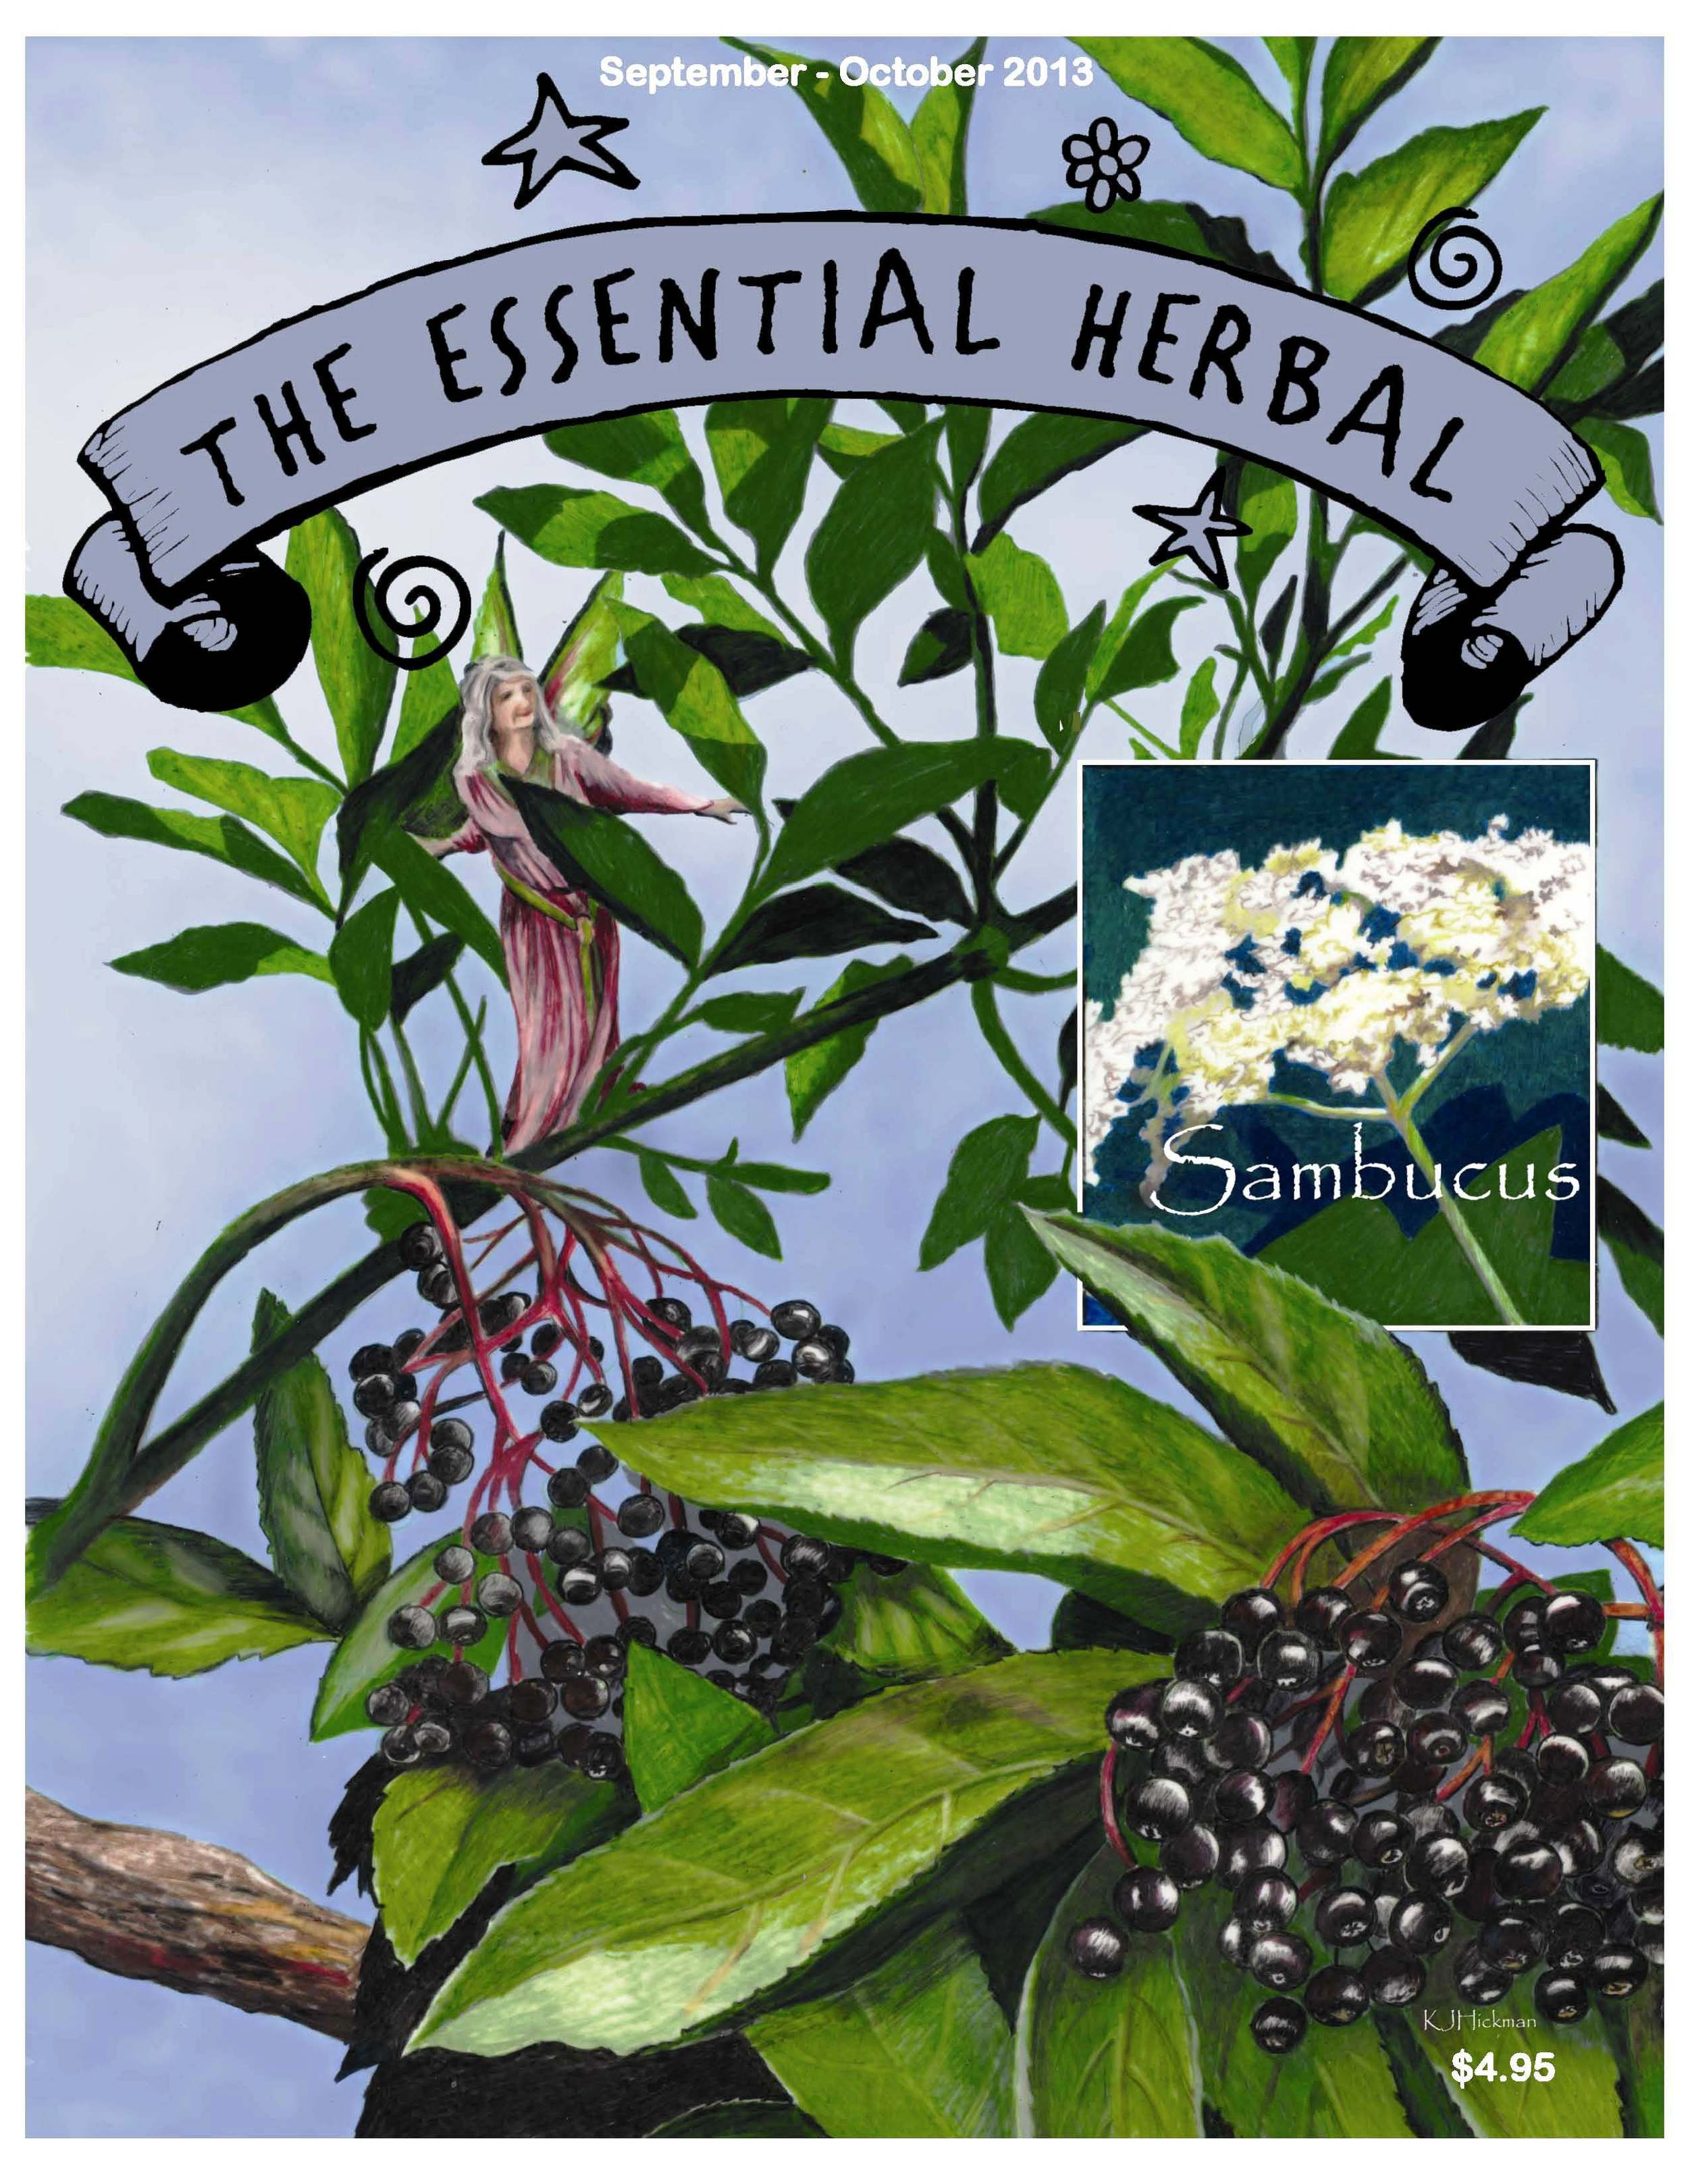 The essential herbal affiliate cover.jpg